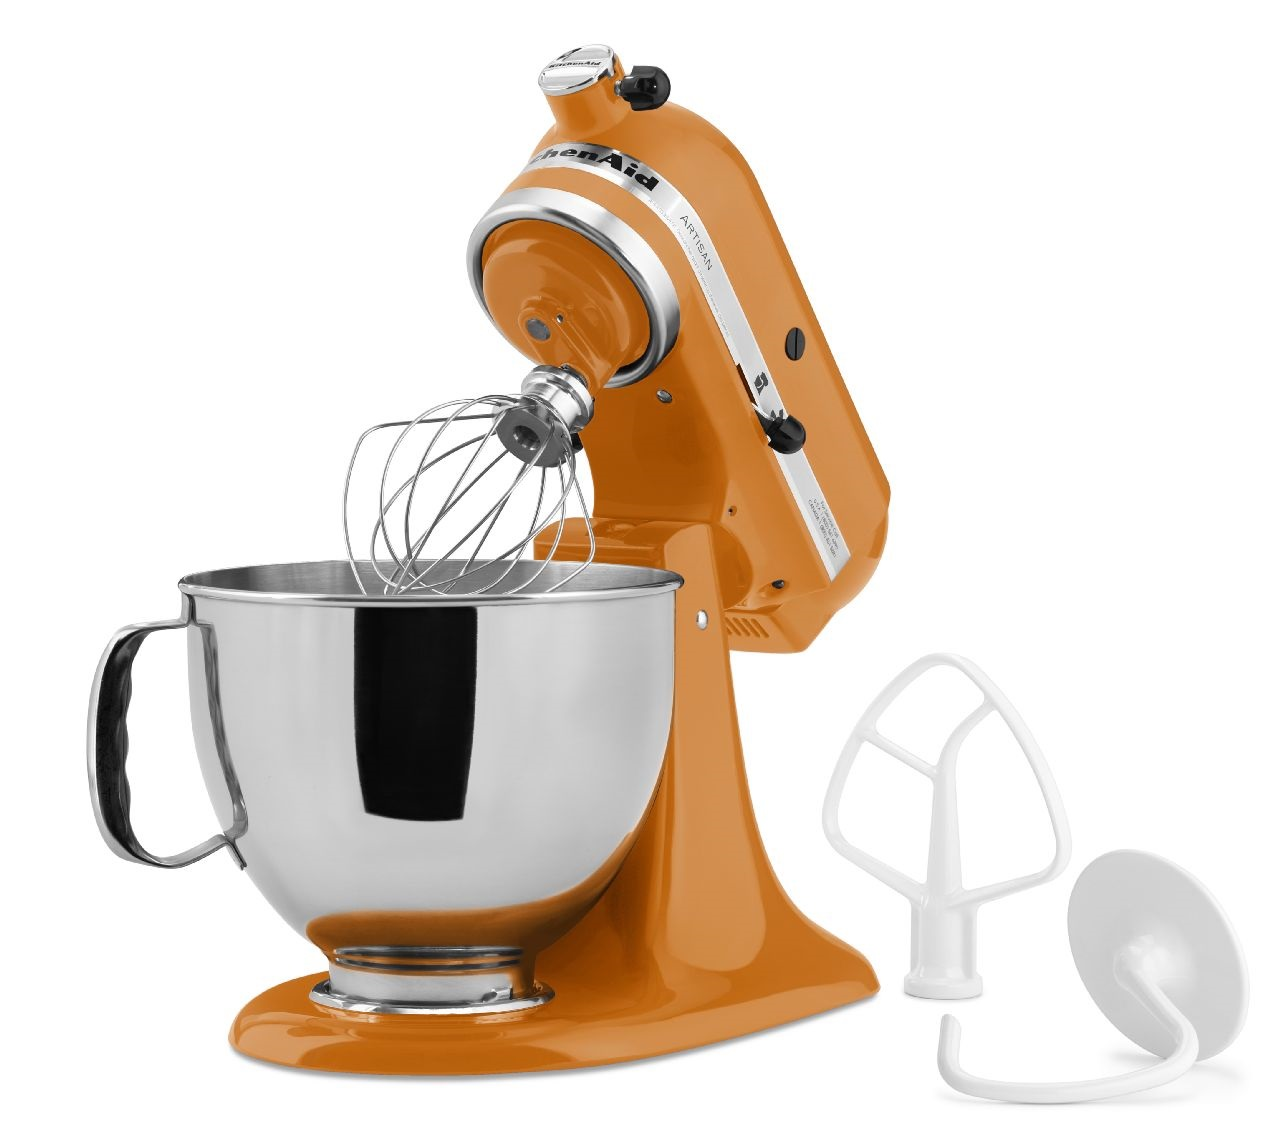 KitchenAid-Refurbished-Artisan-Series-5-Quart-Tilt-Head-Stand-Mixer-RRK150 thumbnail 80